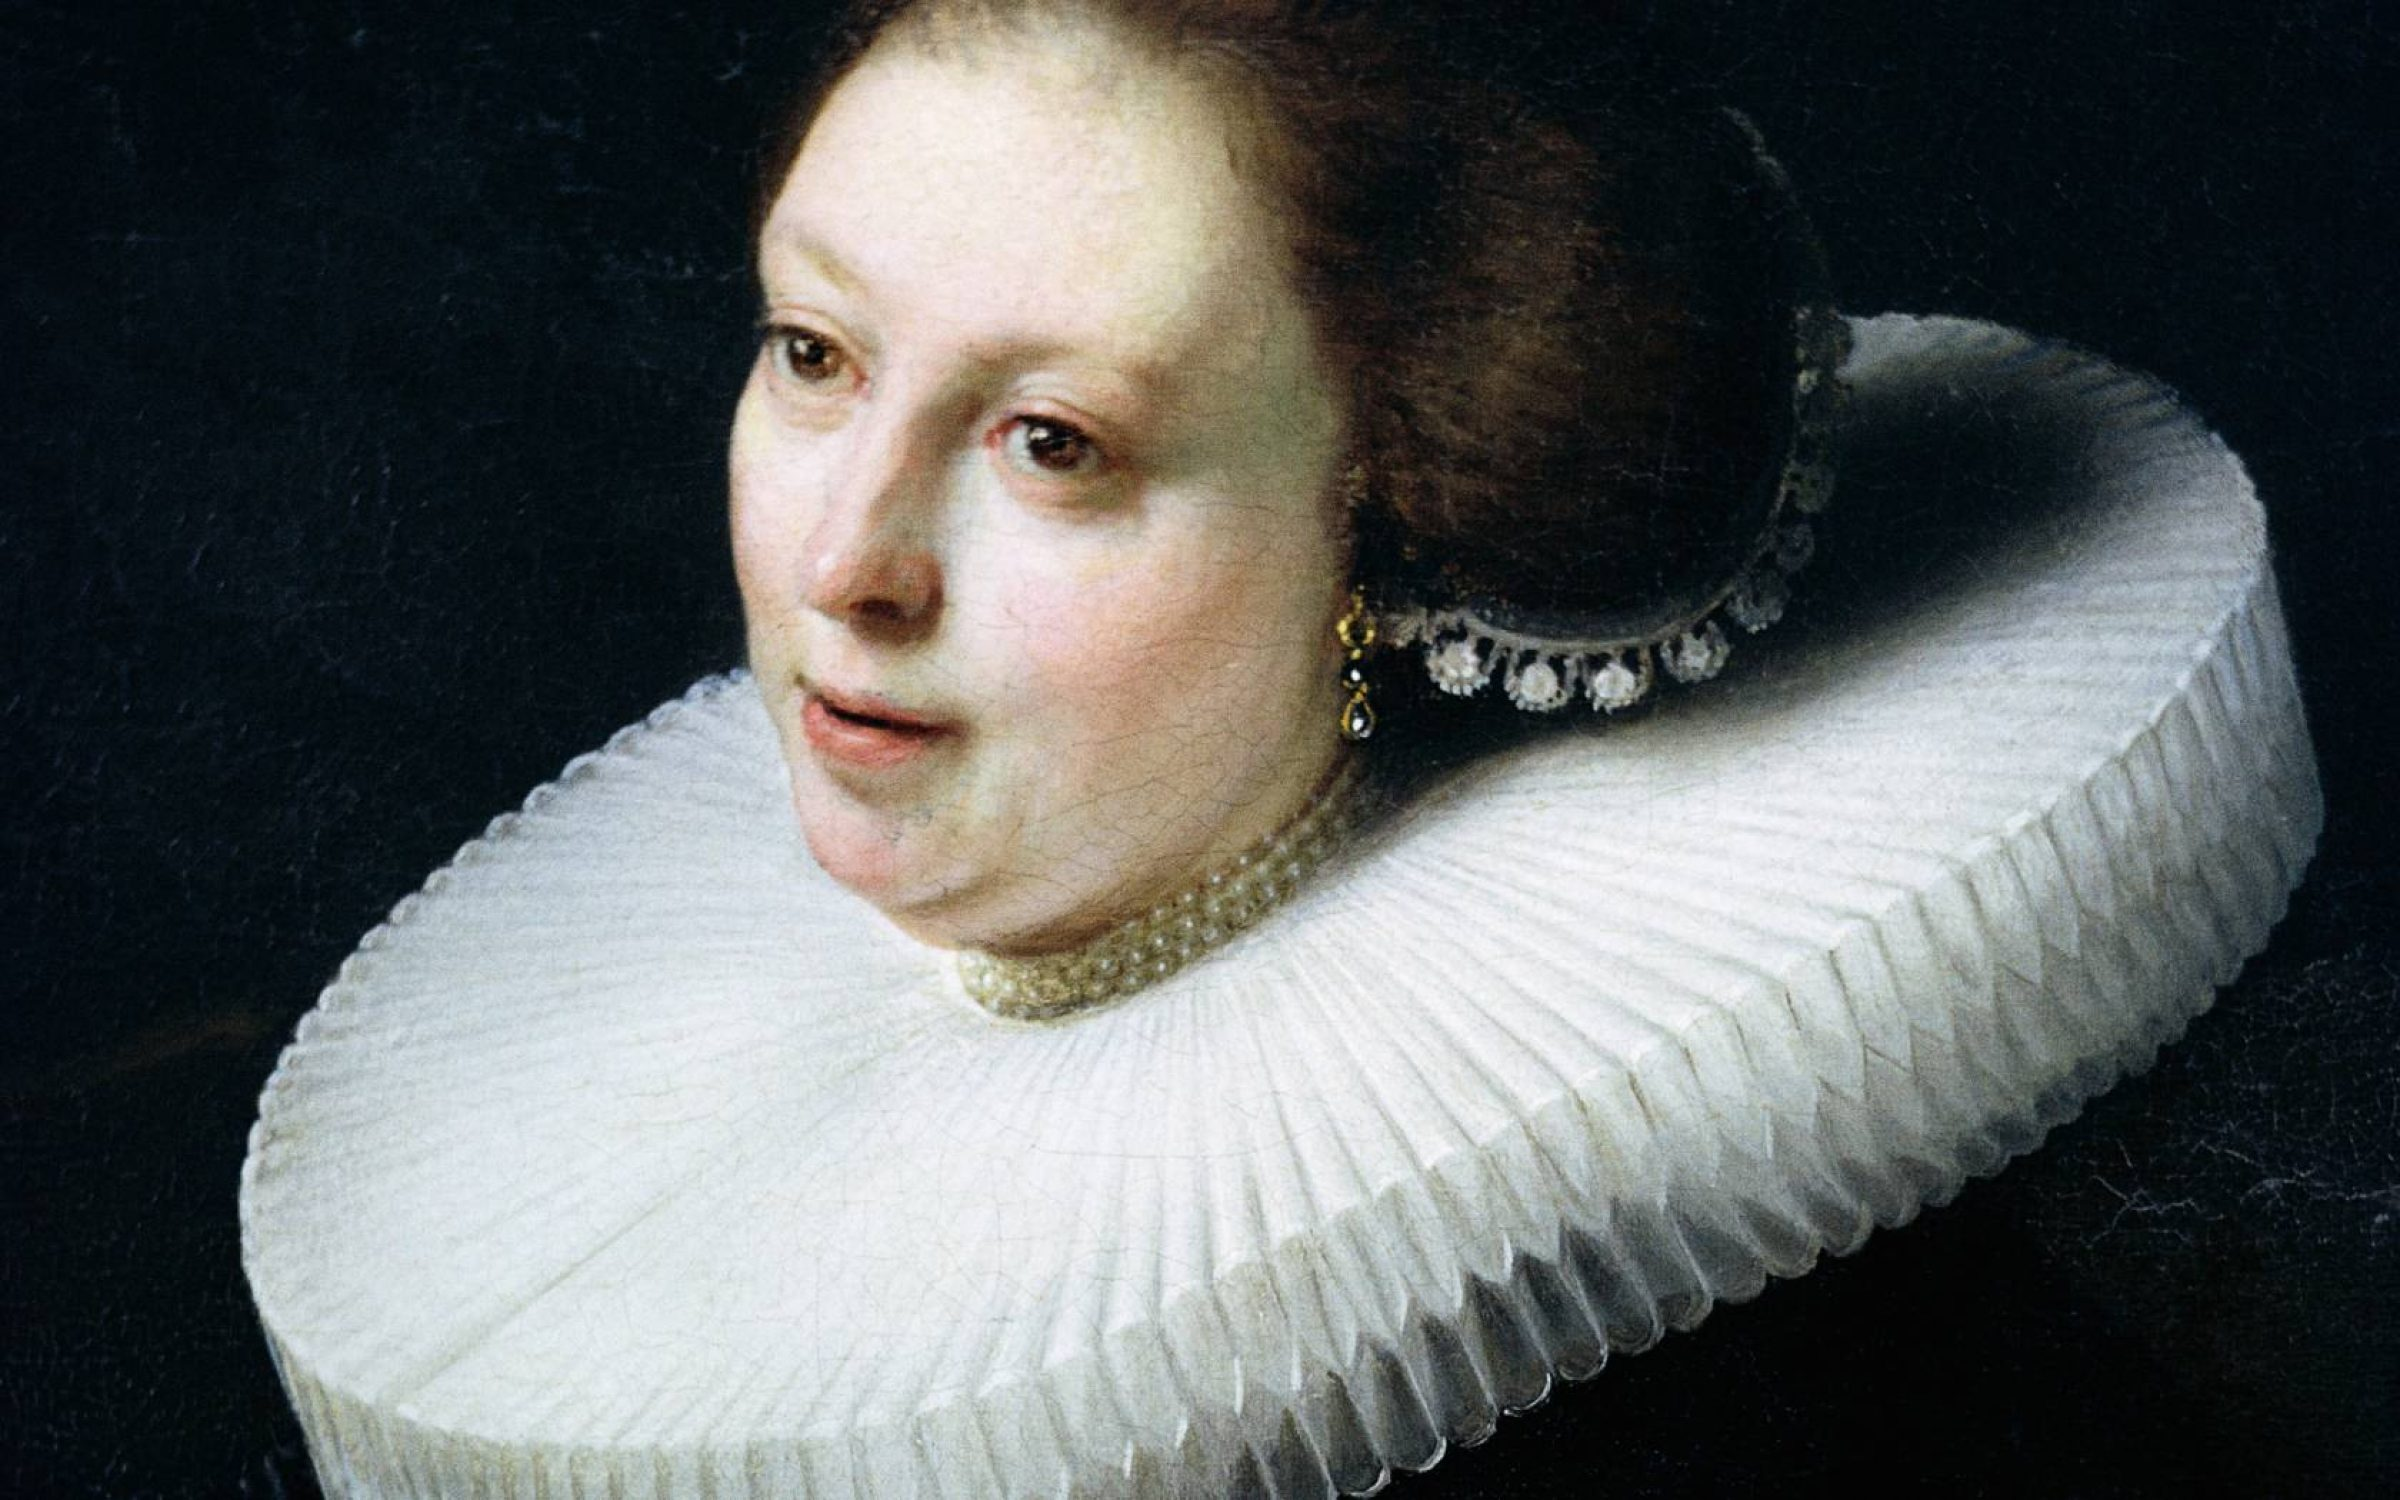 Rembrandt painting ruff